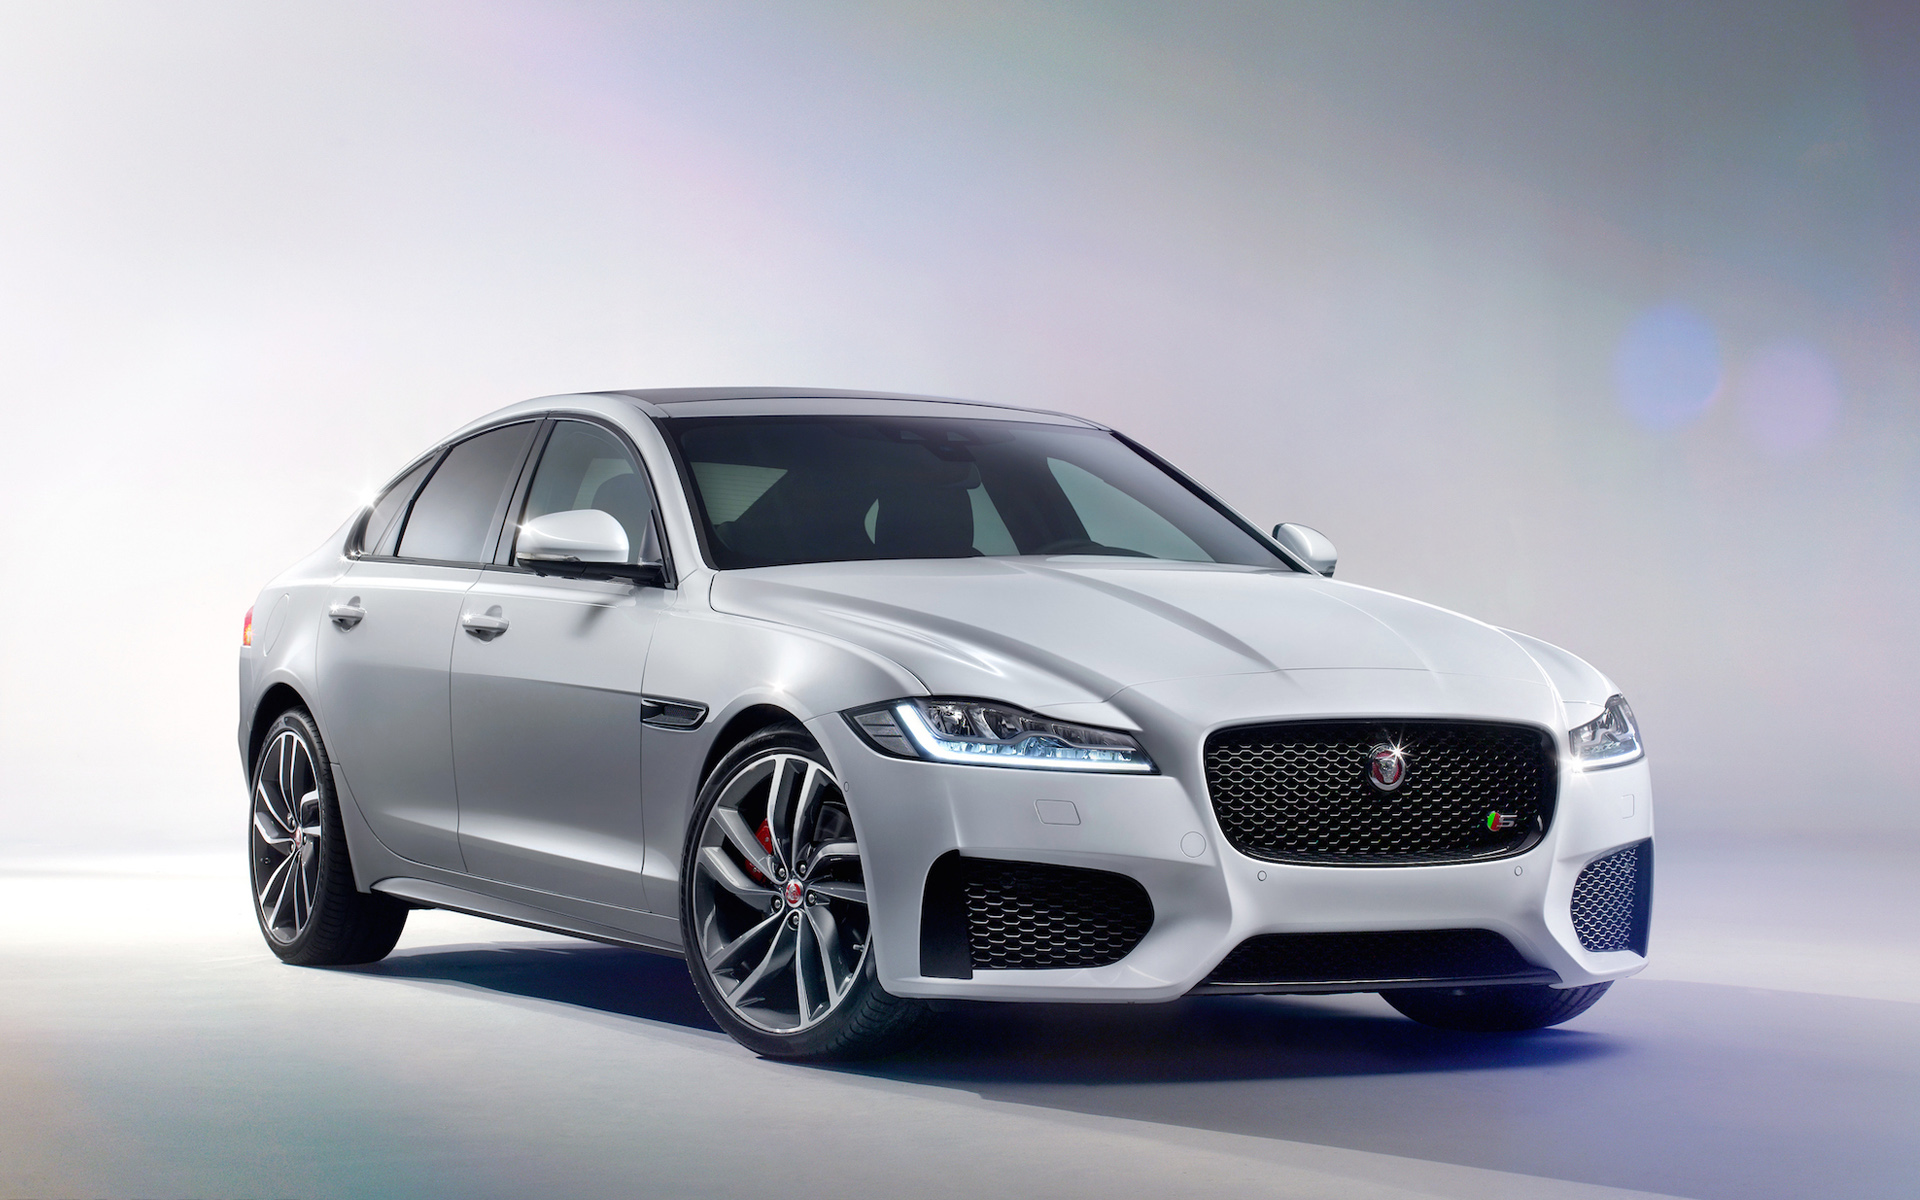 2016 Jaguar XF 2 Wallpaper | HD Car Wallpapers